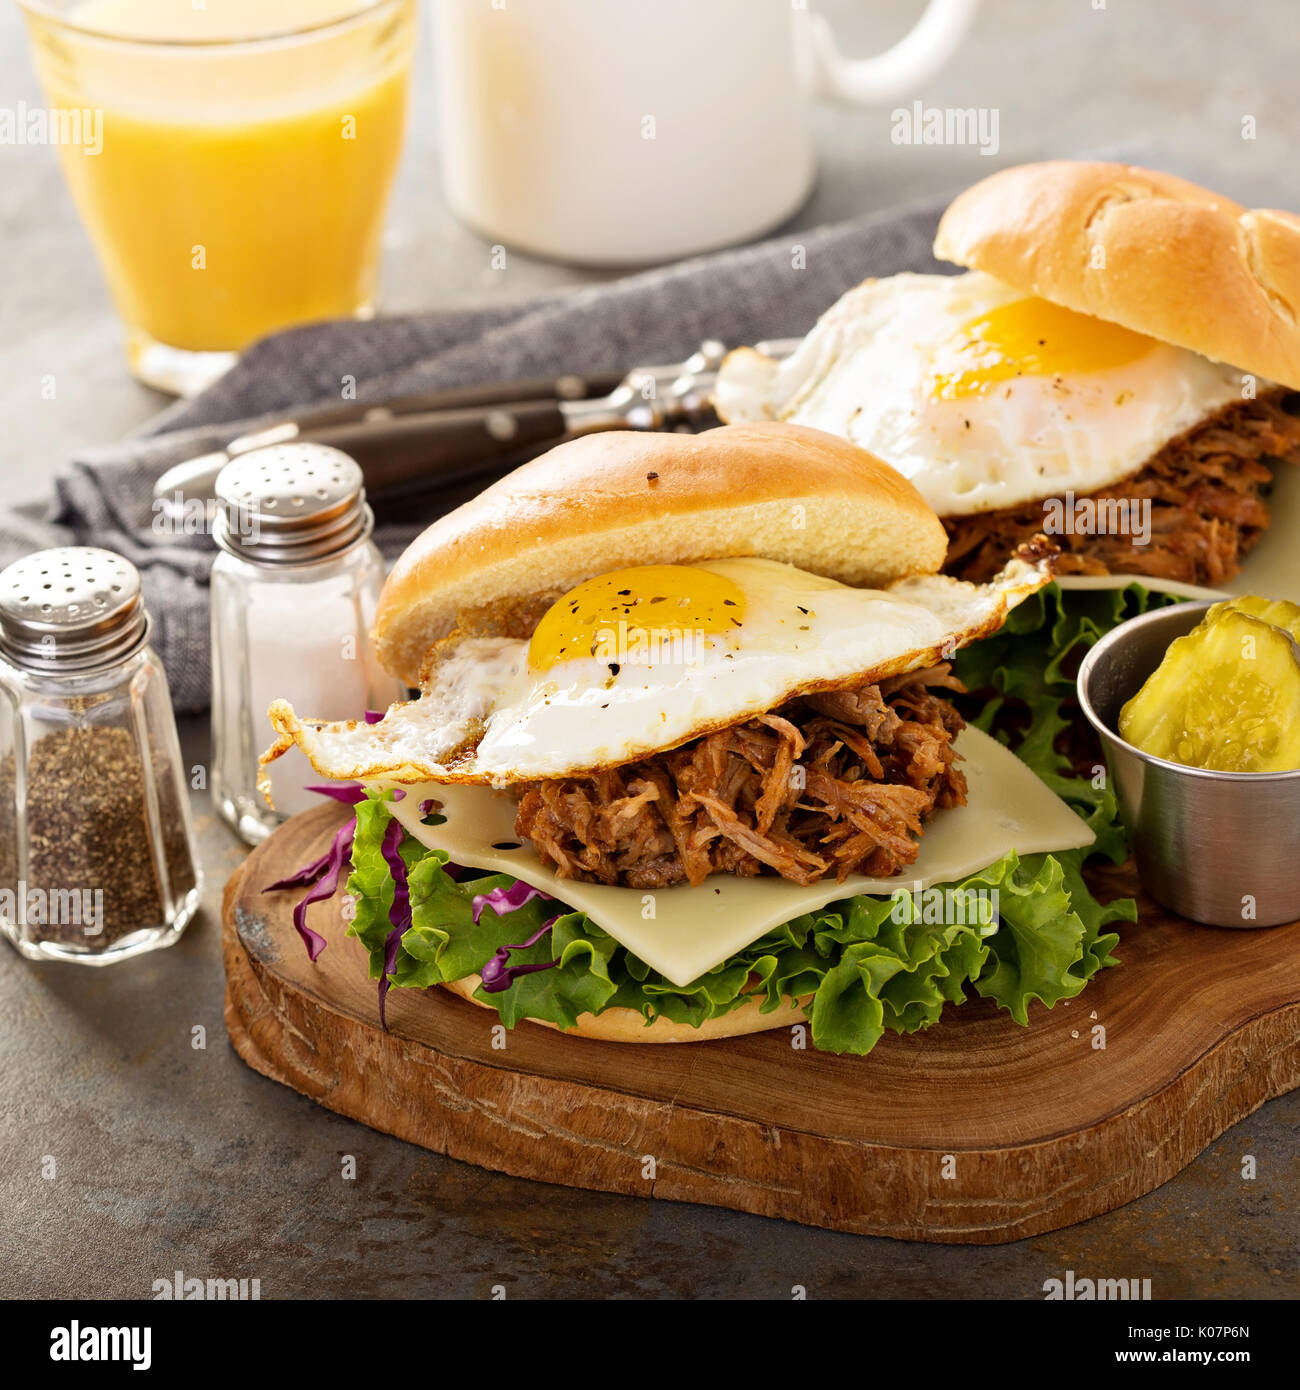 Pulled pork breakfast sandwiches with fried egg - Stock Image